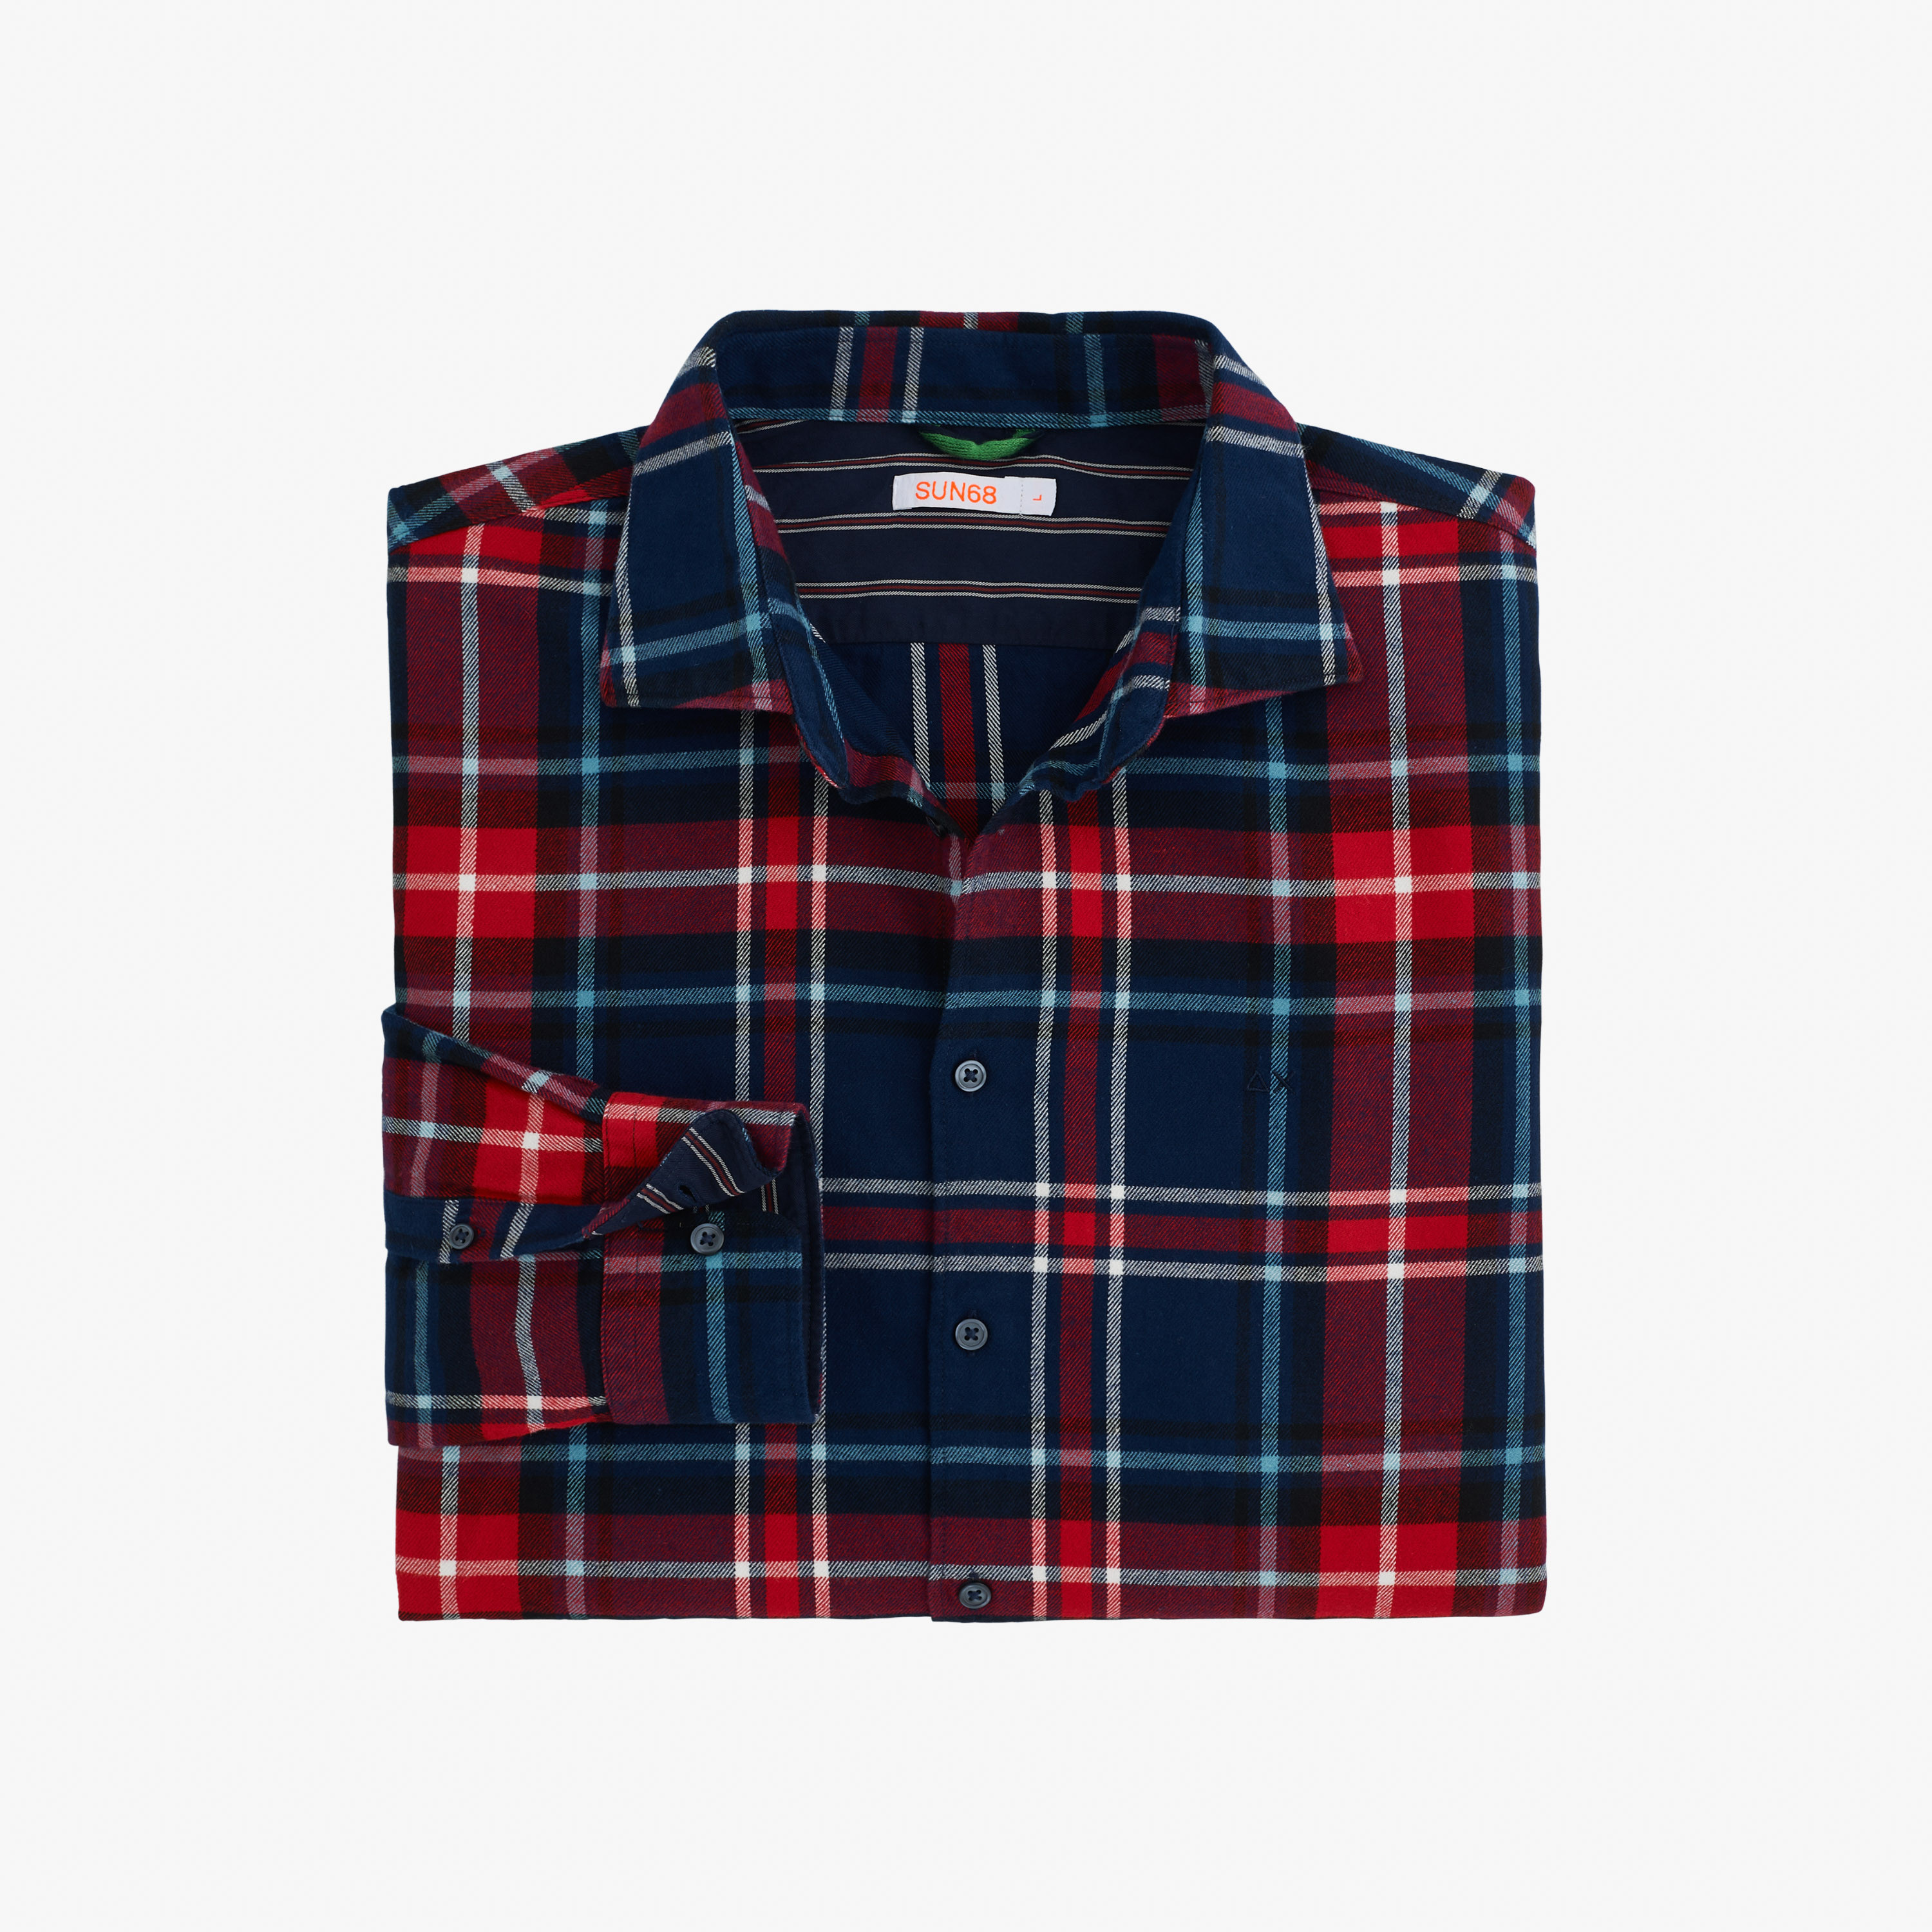 SHIRT BIG DETAILS FRENCH COLLAR L/S NAVY BLUE/RED